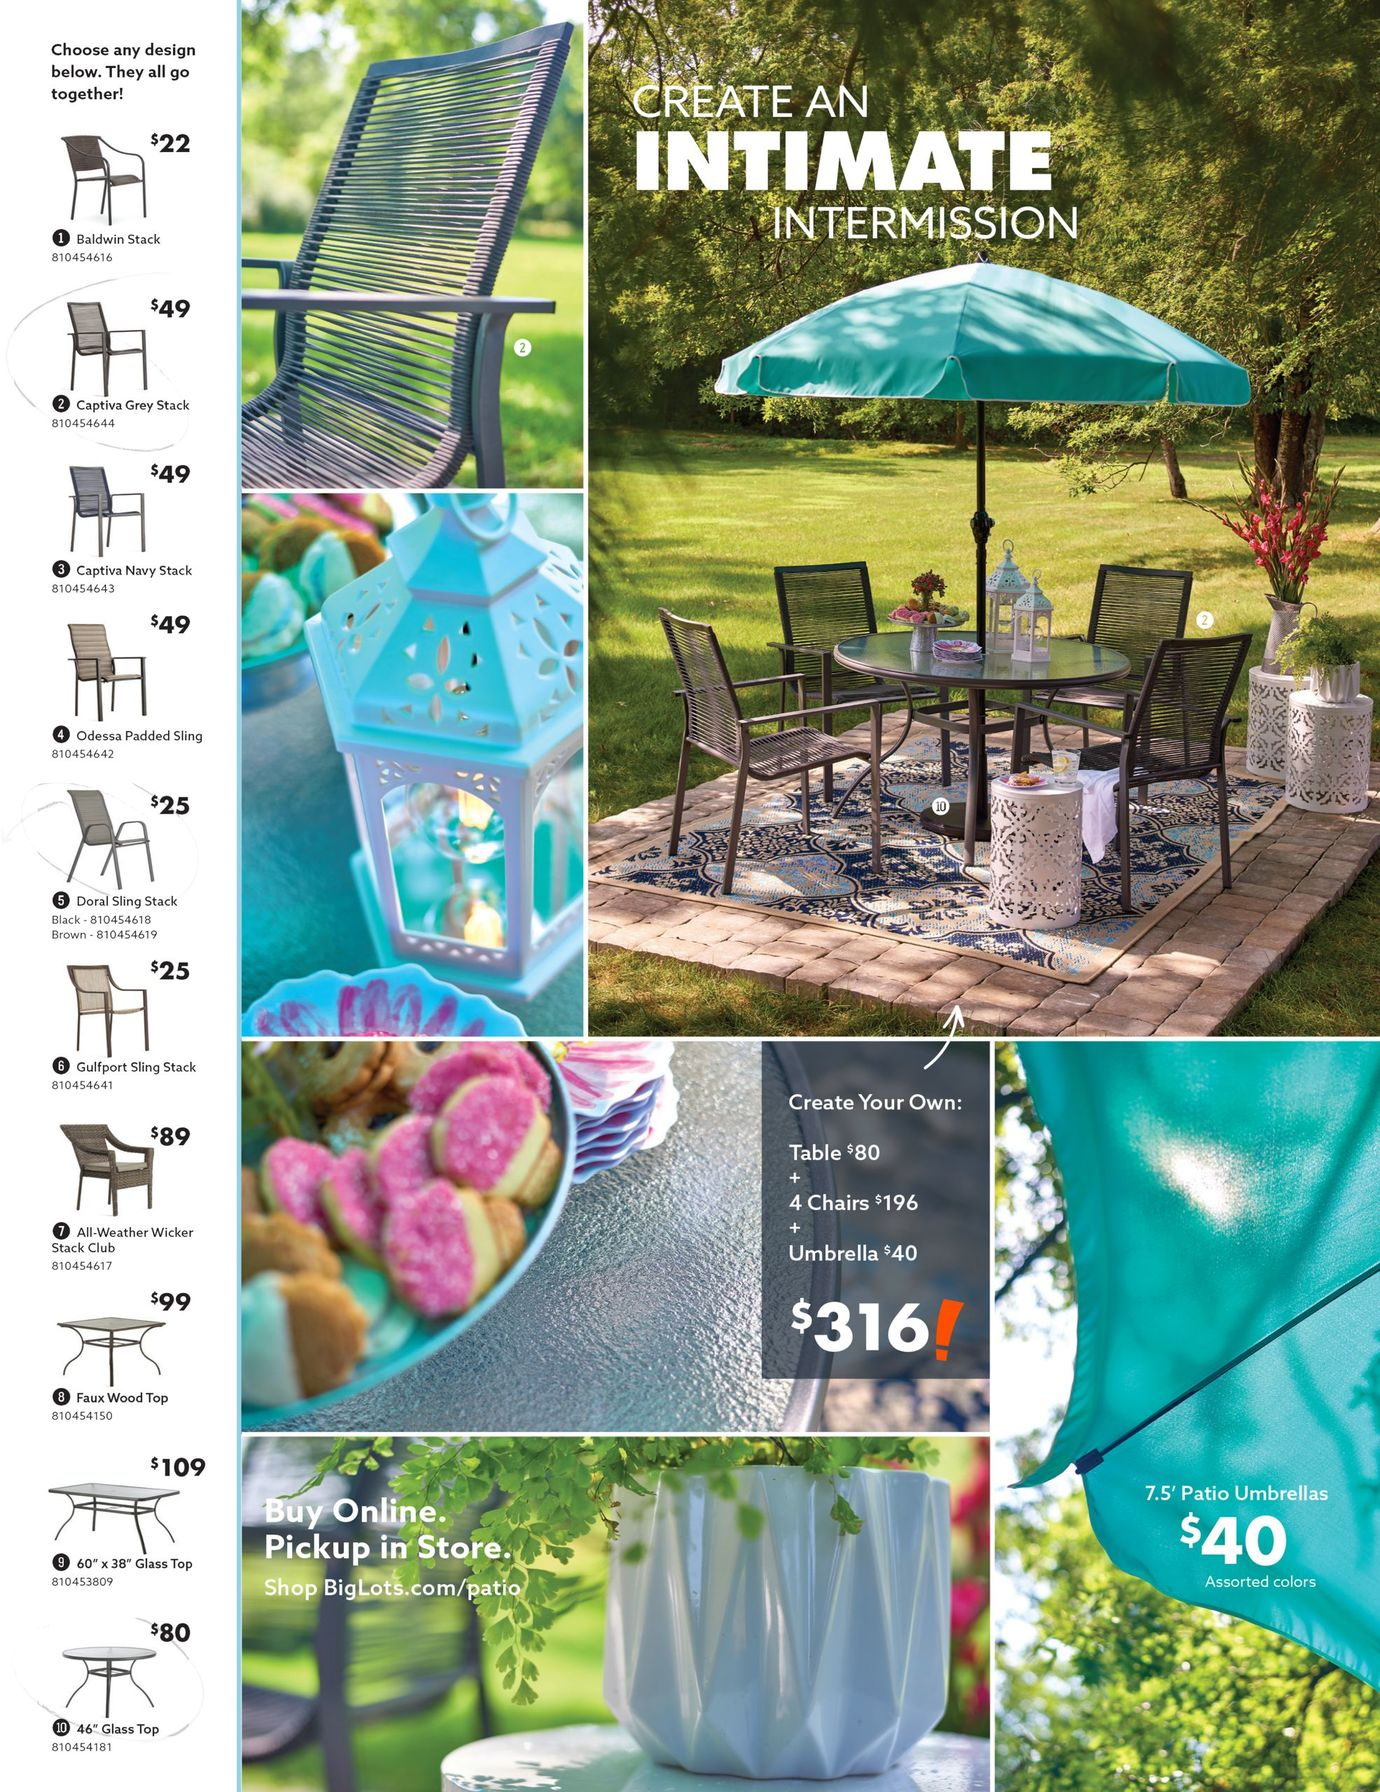 Big Lots Weekly January 19 - July 31, 2020 Page 25